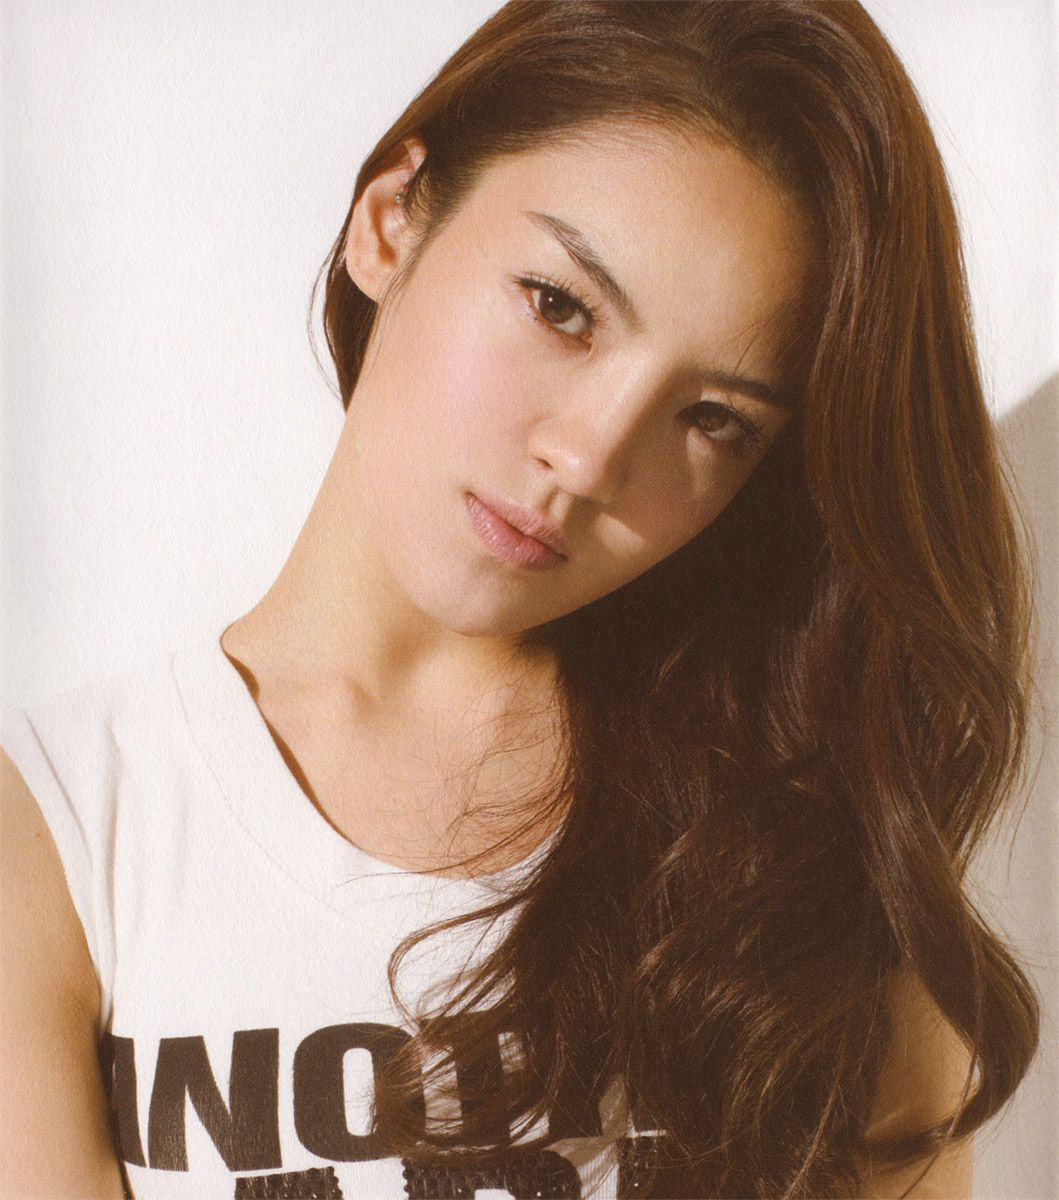 Korean Long Hairstyles With Soft Curls Hair For Young Women From - Styling long hair